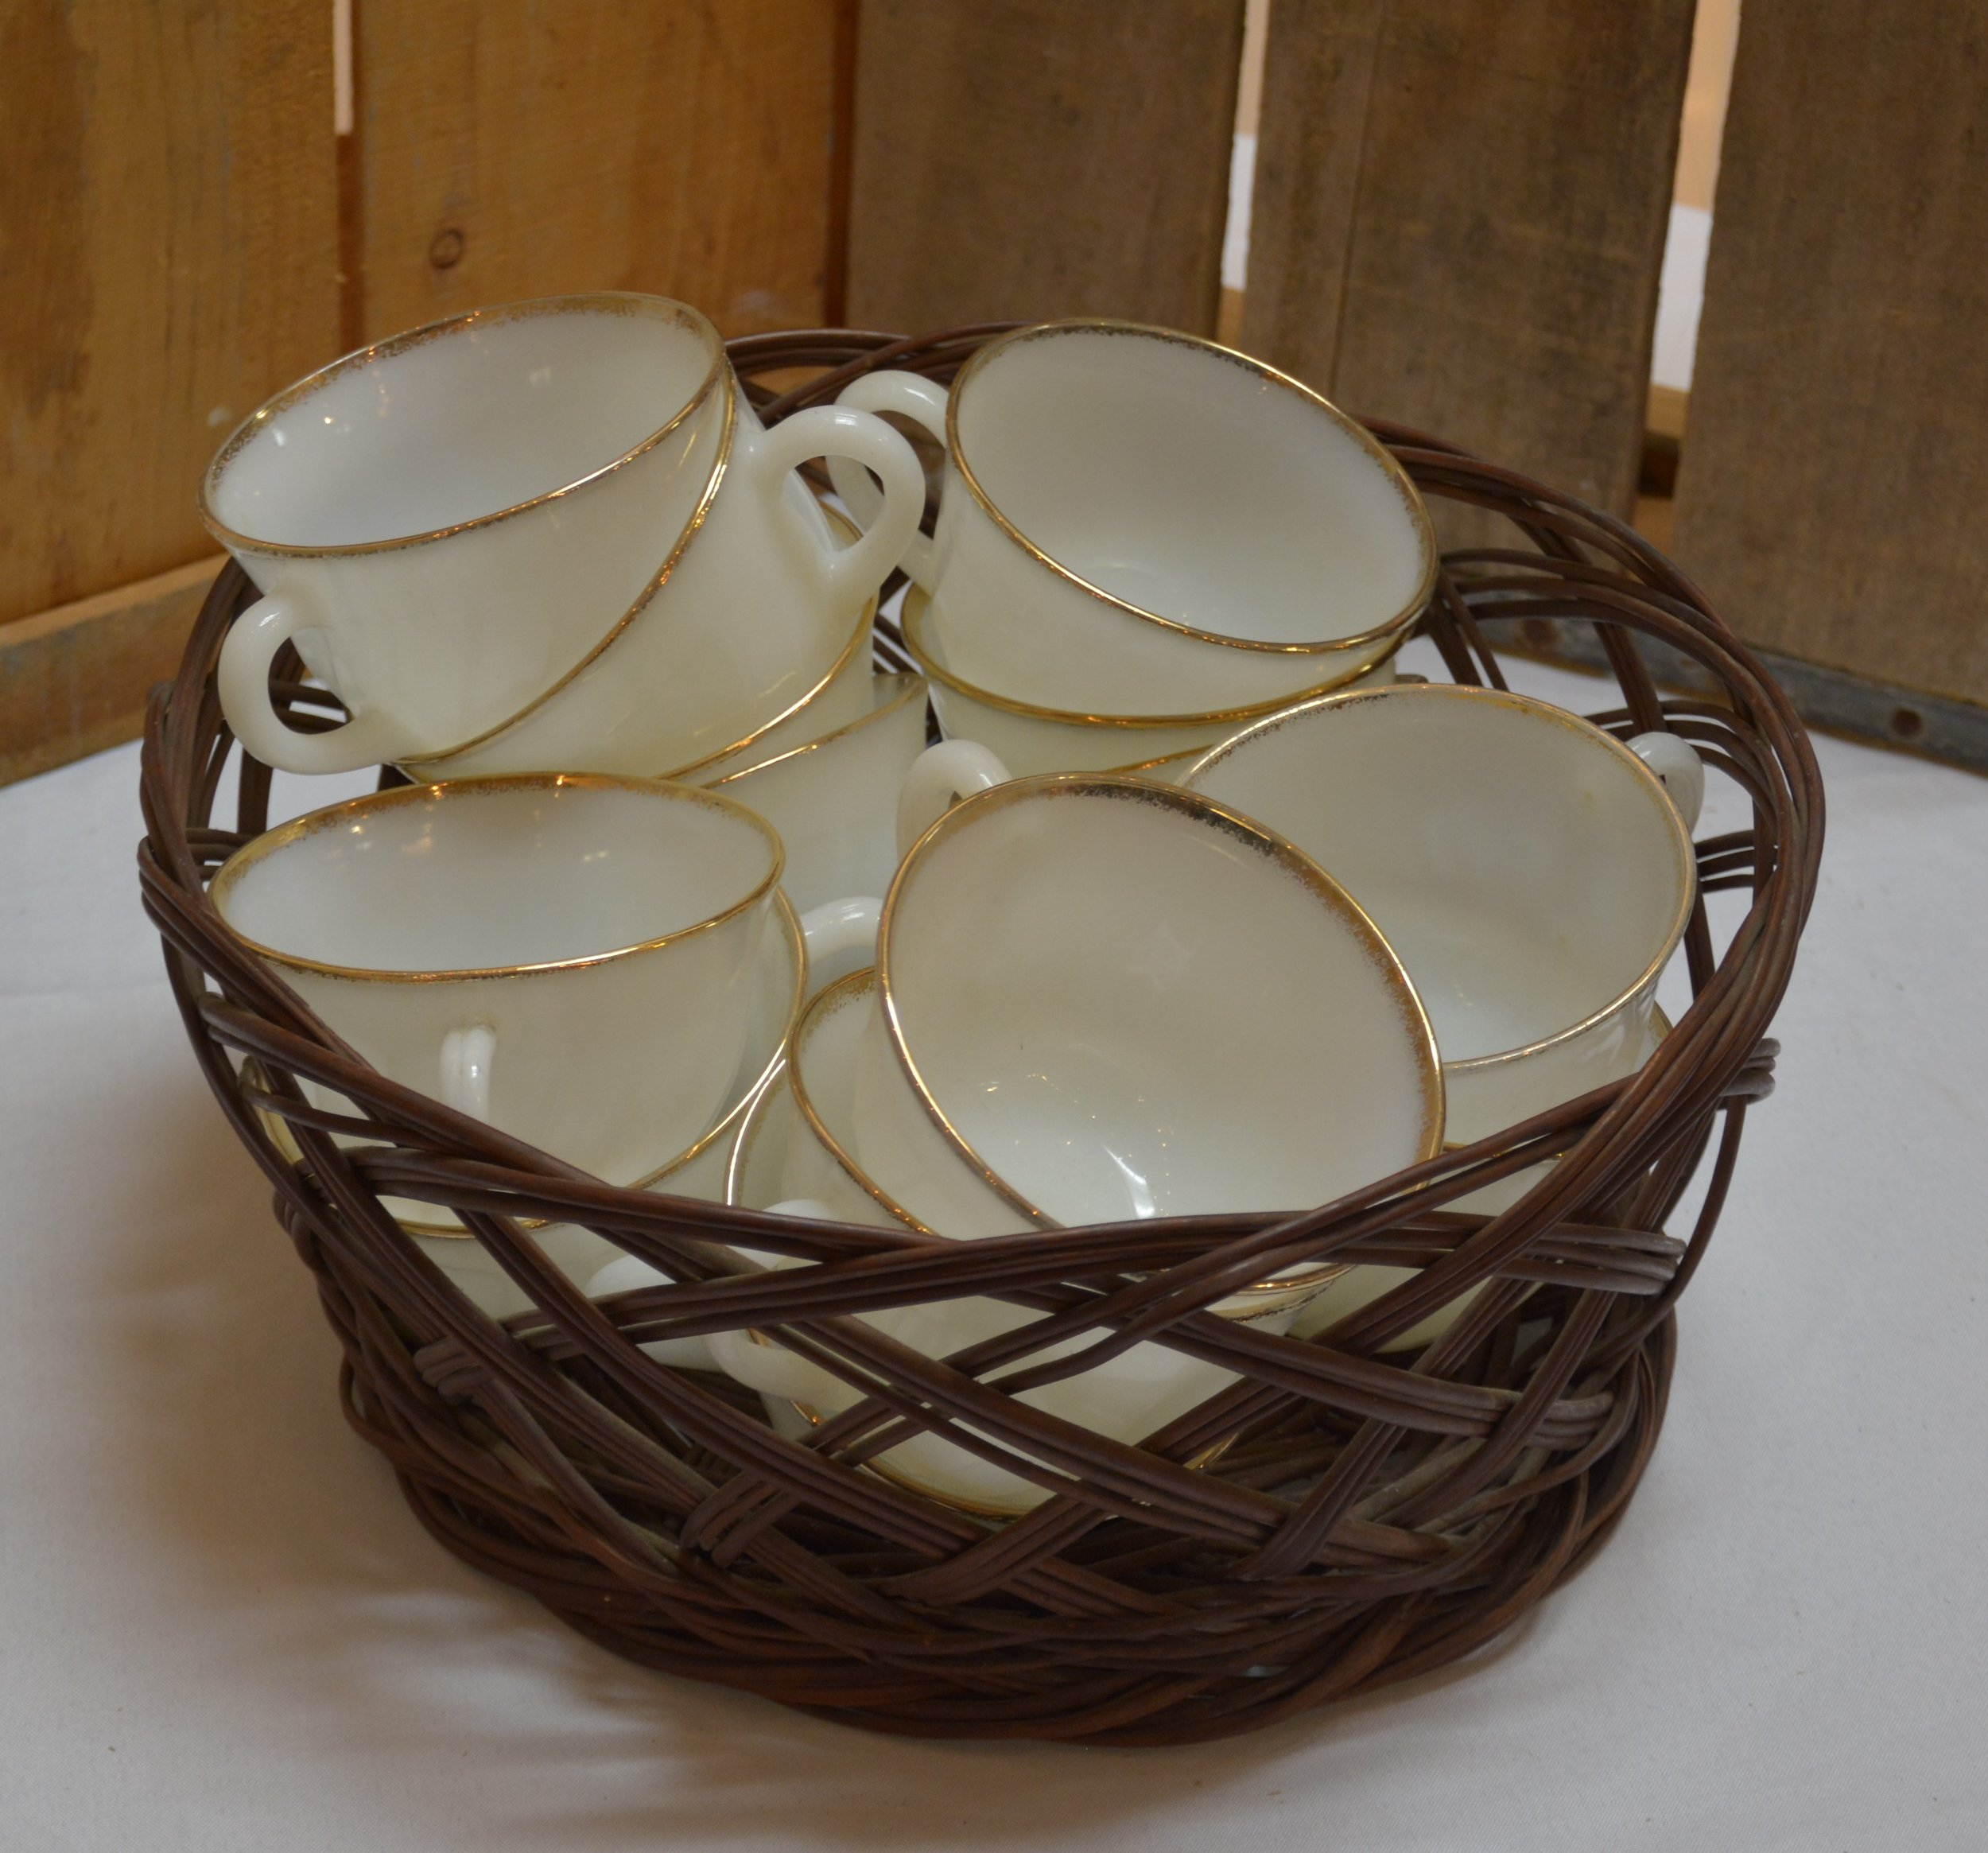 Basket of Vintage Fire King Cups.JPG